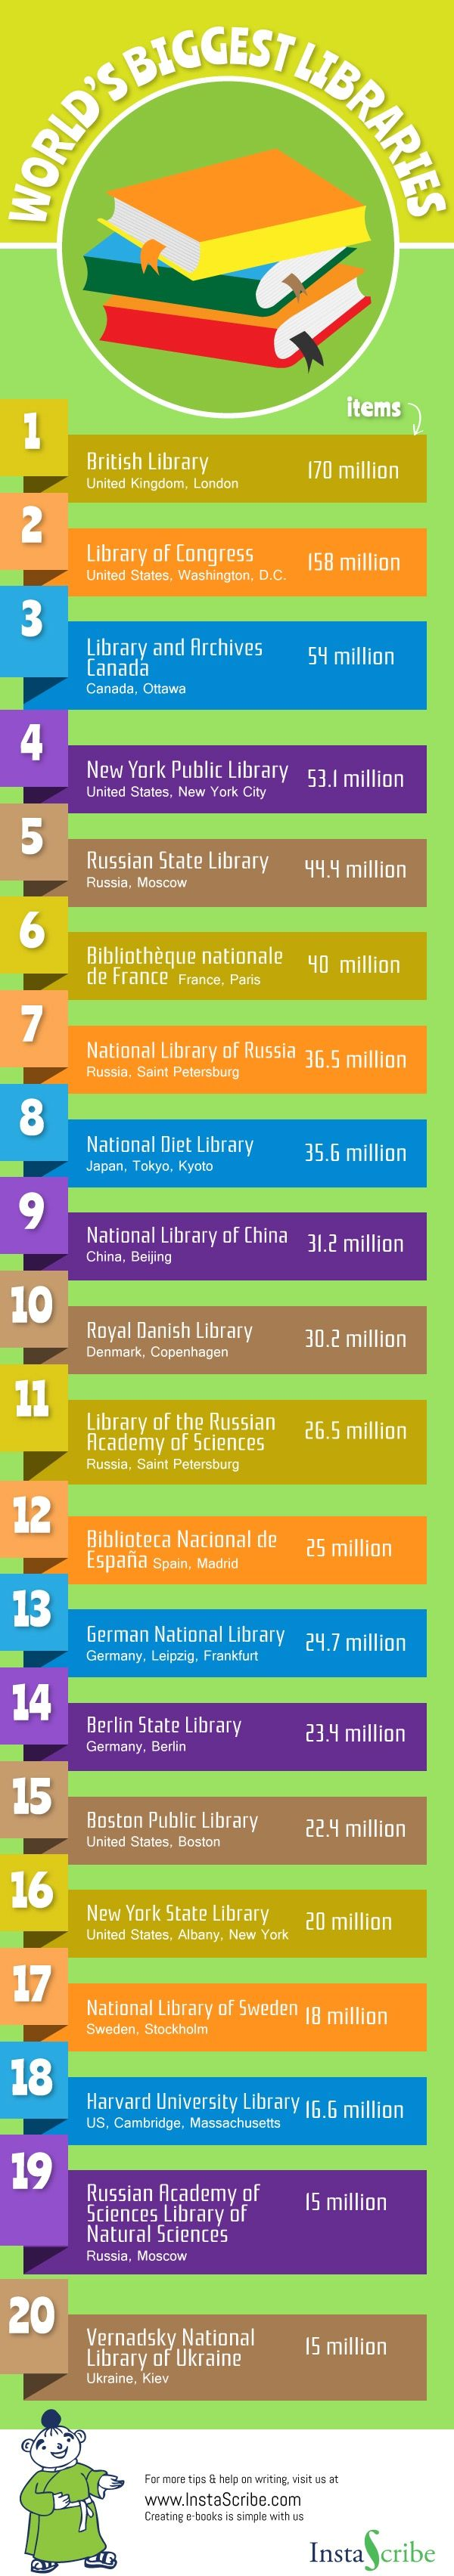 943 best libraries images on pinterest bookshelf ideas library 20 biggest libraries in the world infographic fandeluxe Image collections